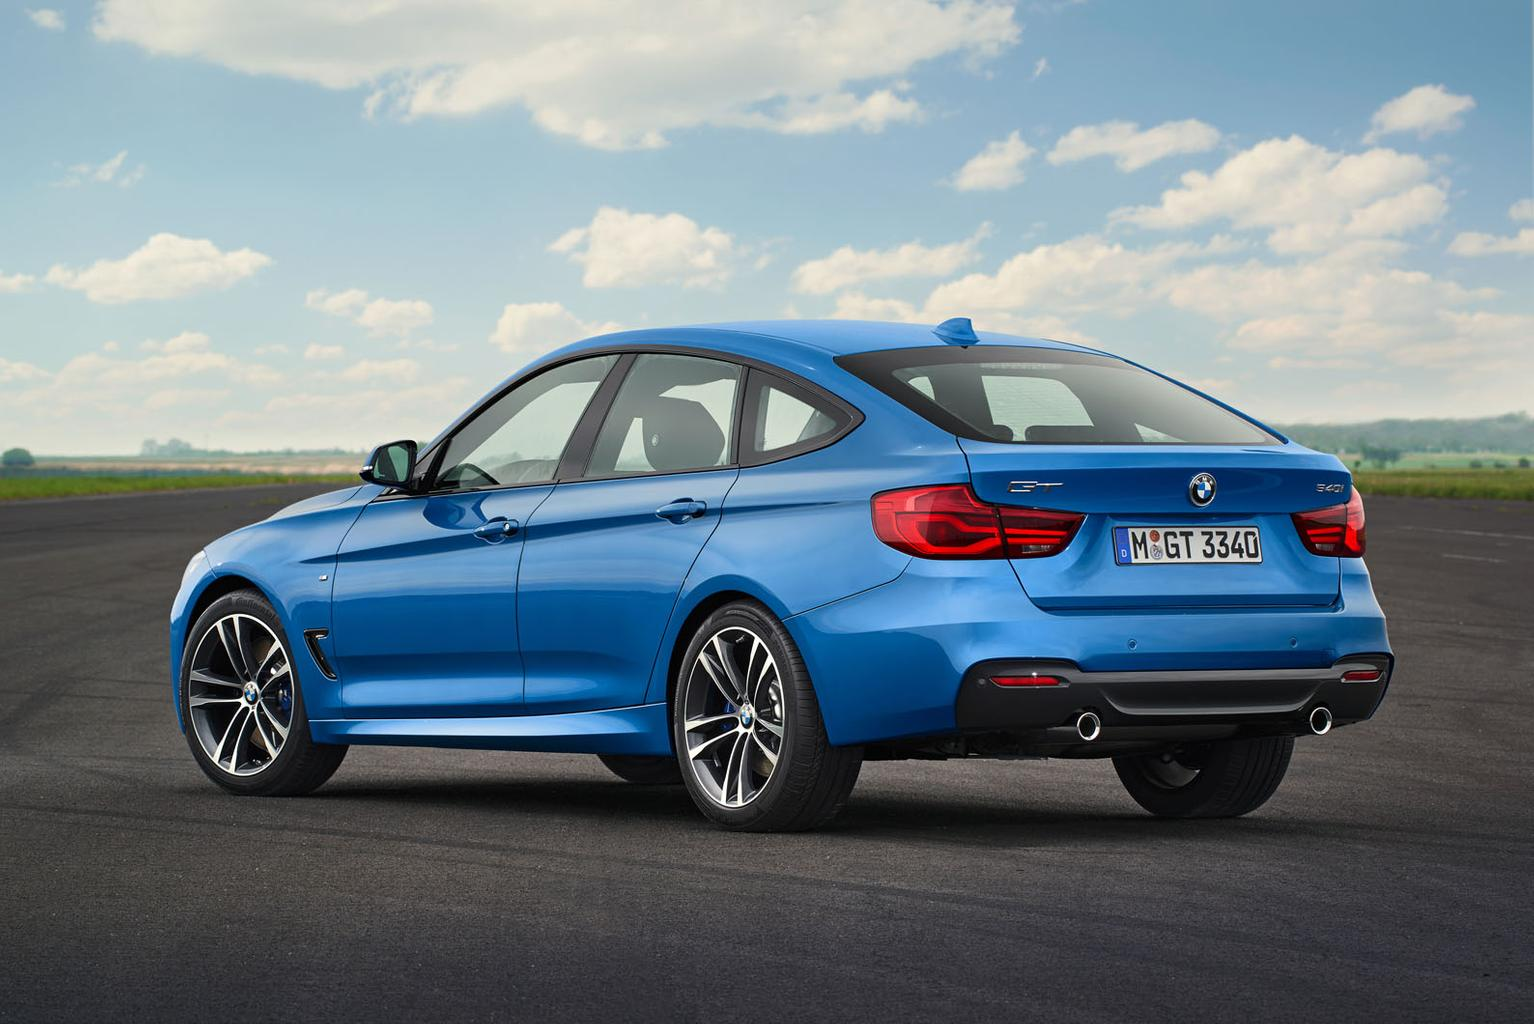 Facelifted BMW 3 Series Gran Turismo to go on sale in July